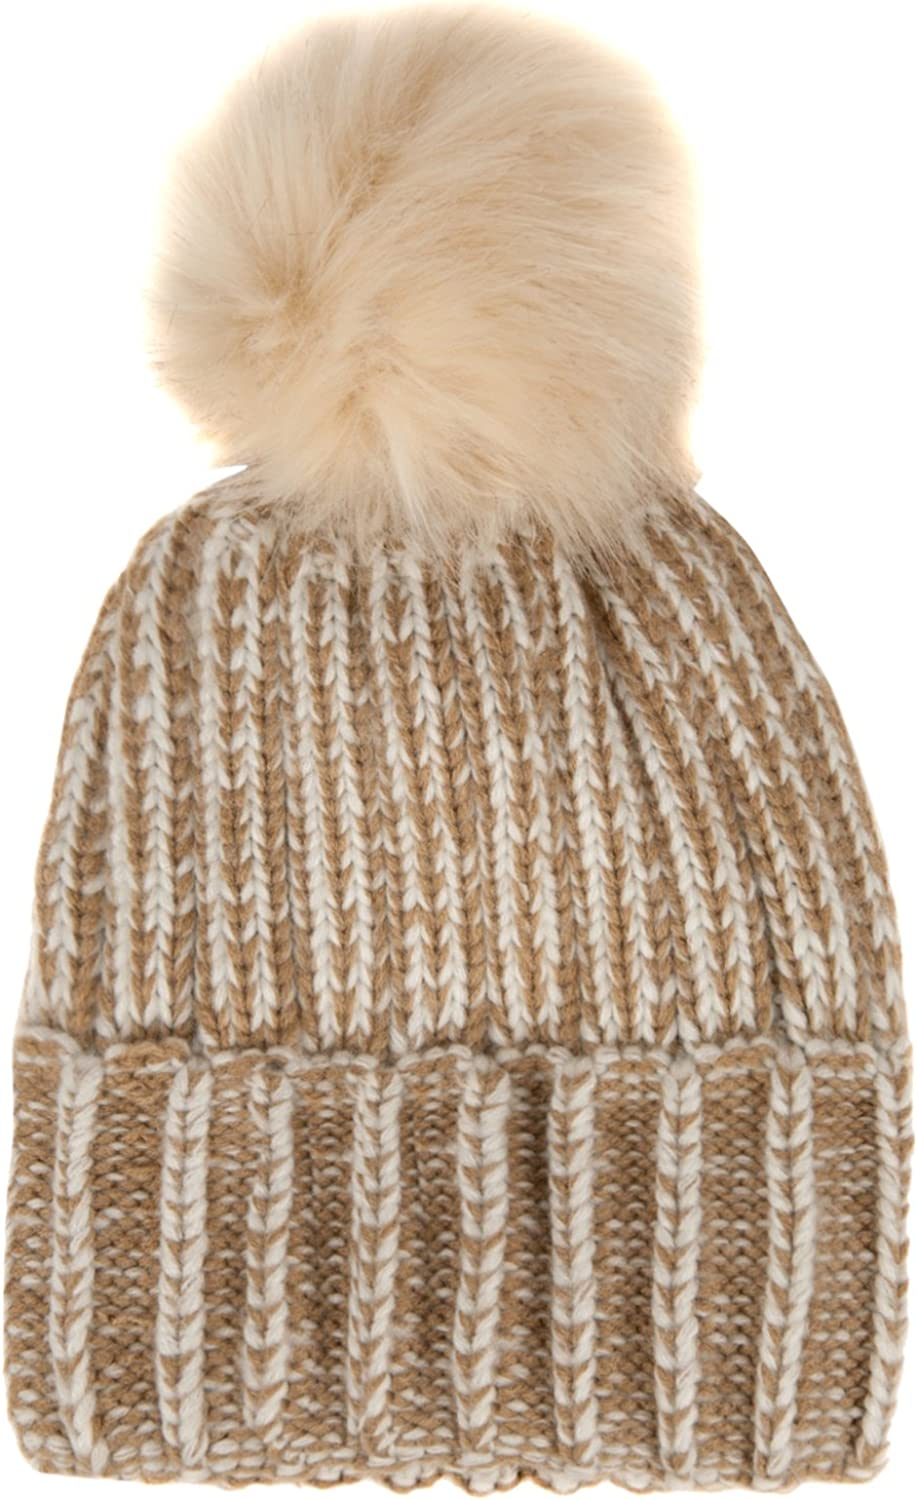 Aerusi TwoTone Thick Knit Fashionable Cold Weather Winter Unisex Beanie